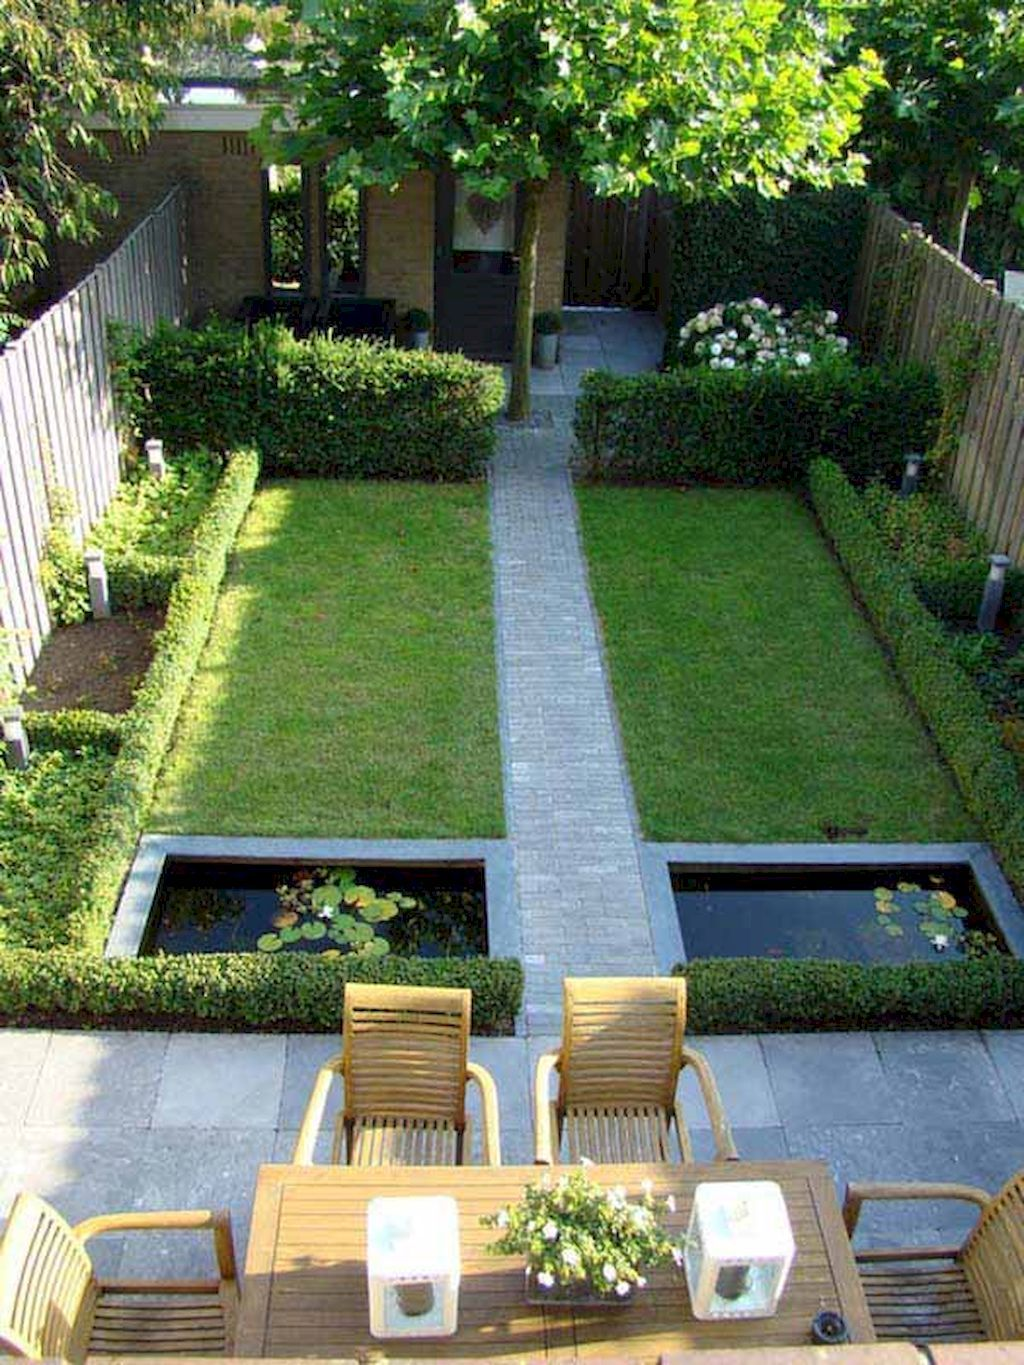 pin by kelley losher on kells yard and patio in 2018 | pinterest